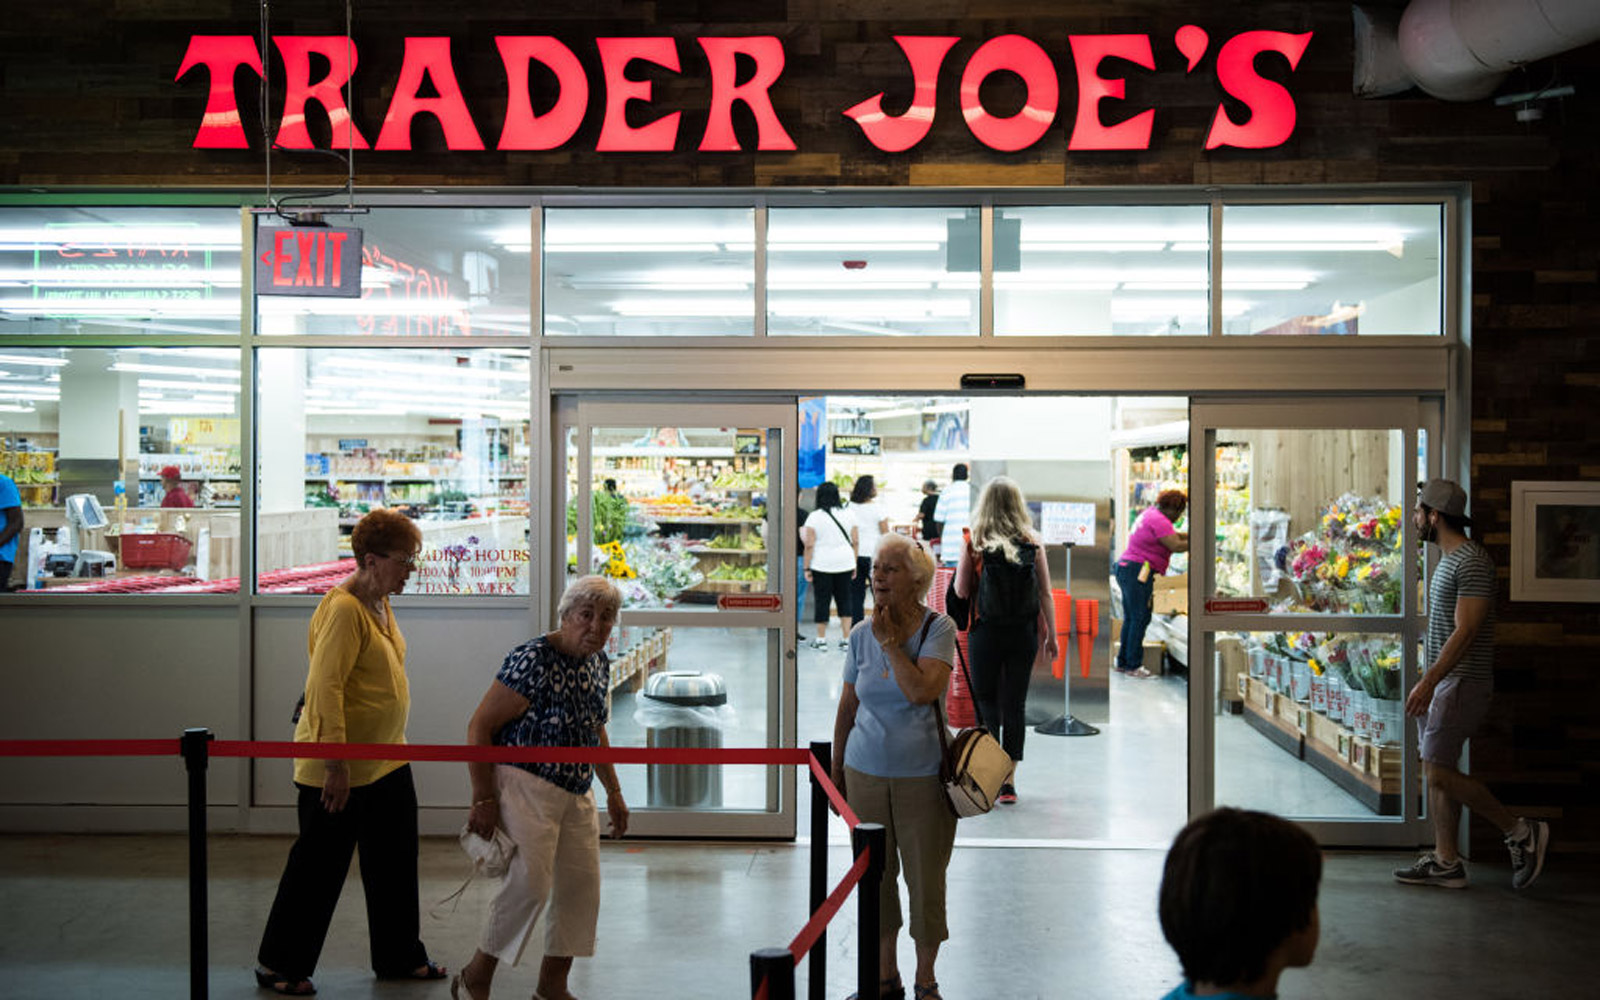 Trader Joe's at City Point in Brooklyn, New York